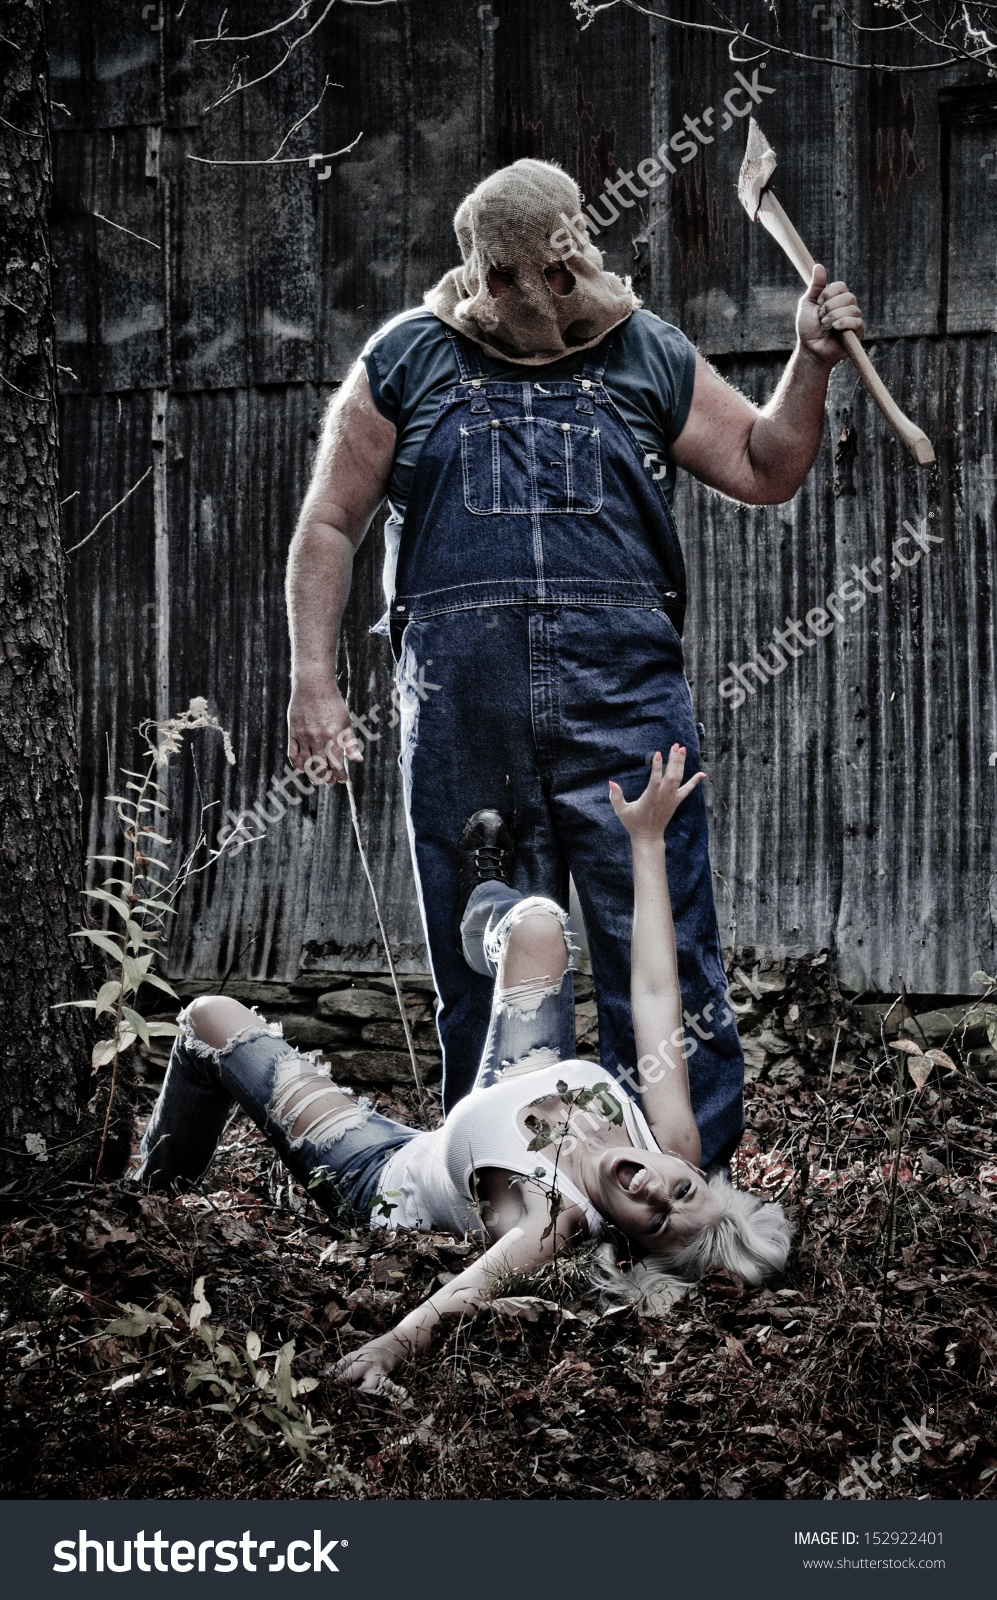 stock-photo-horror-scene-of-a-woman-crawling-in-the-woods-away-from-a-hooded-man-with-an-axe-152922401